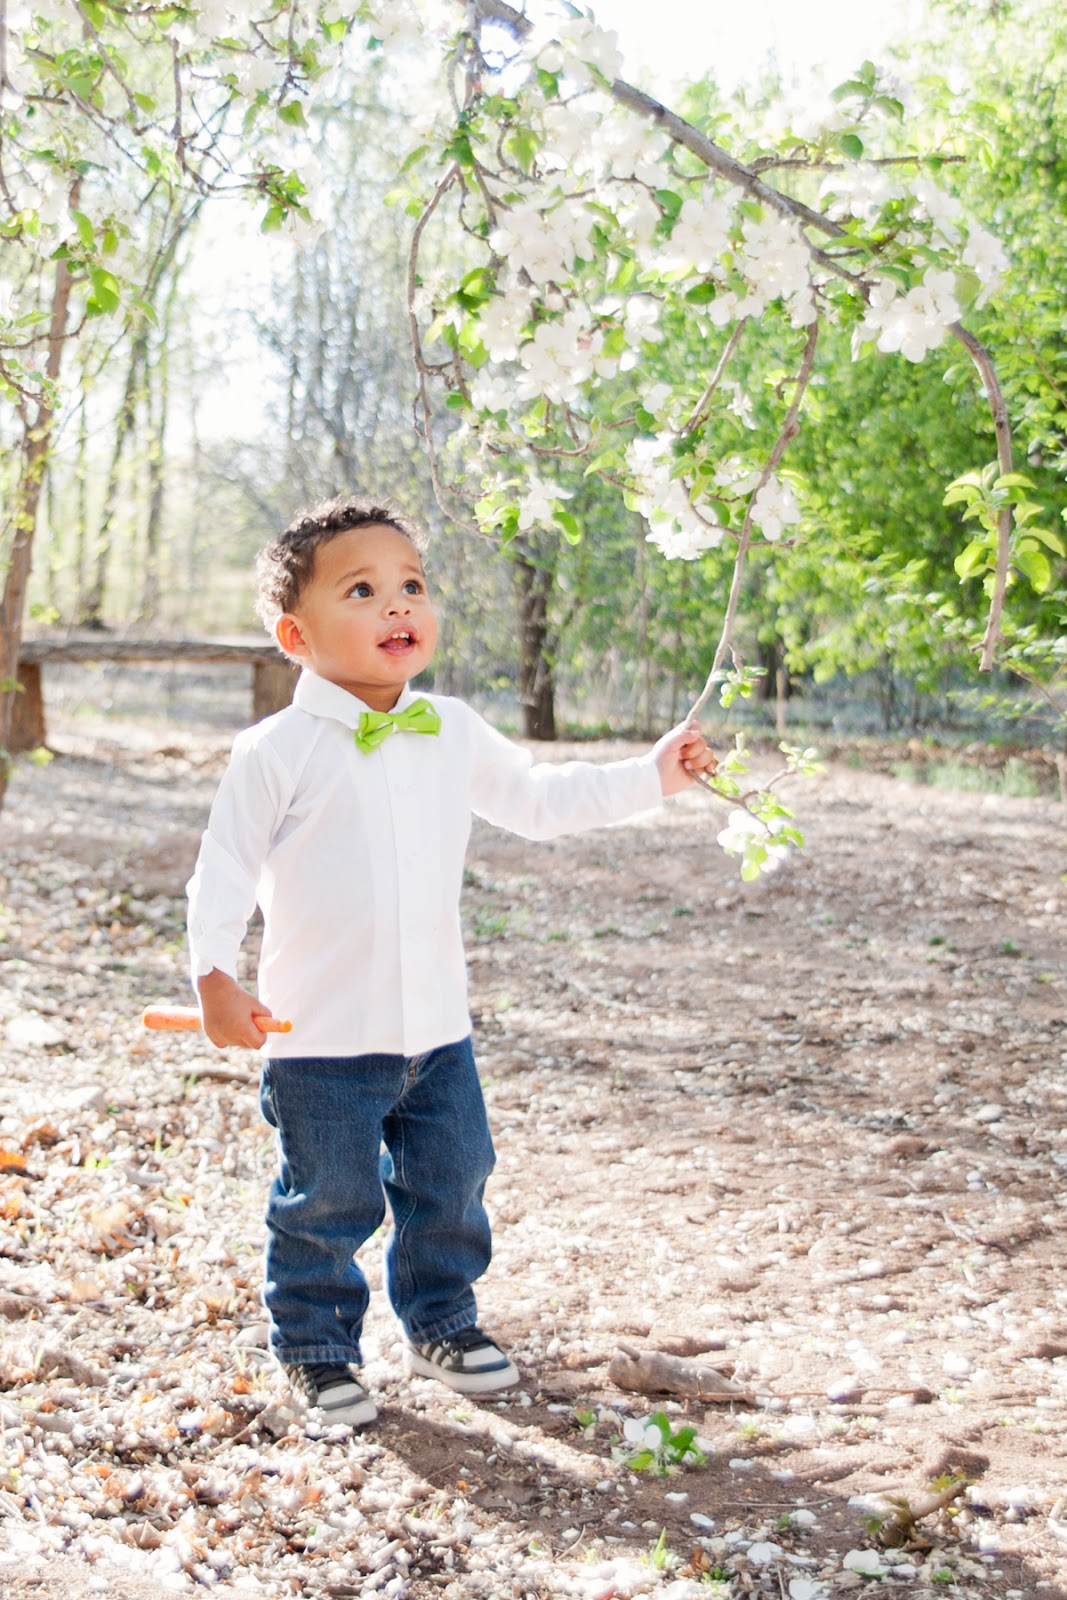 New mexico children photography, albuquerque children photography, albuquerque kids photographer, easter photoshoot ideas, easter photography session, kids easter outfits, albuquerque easter photos